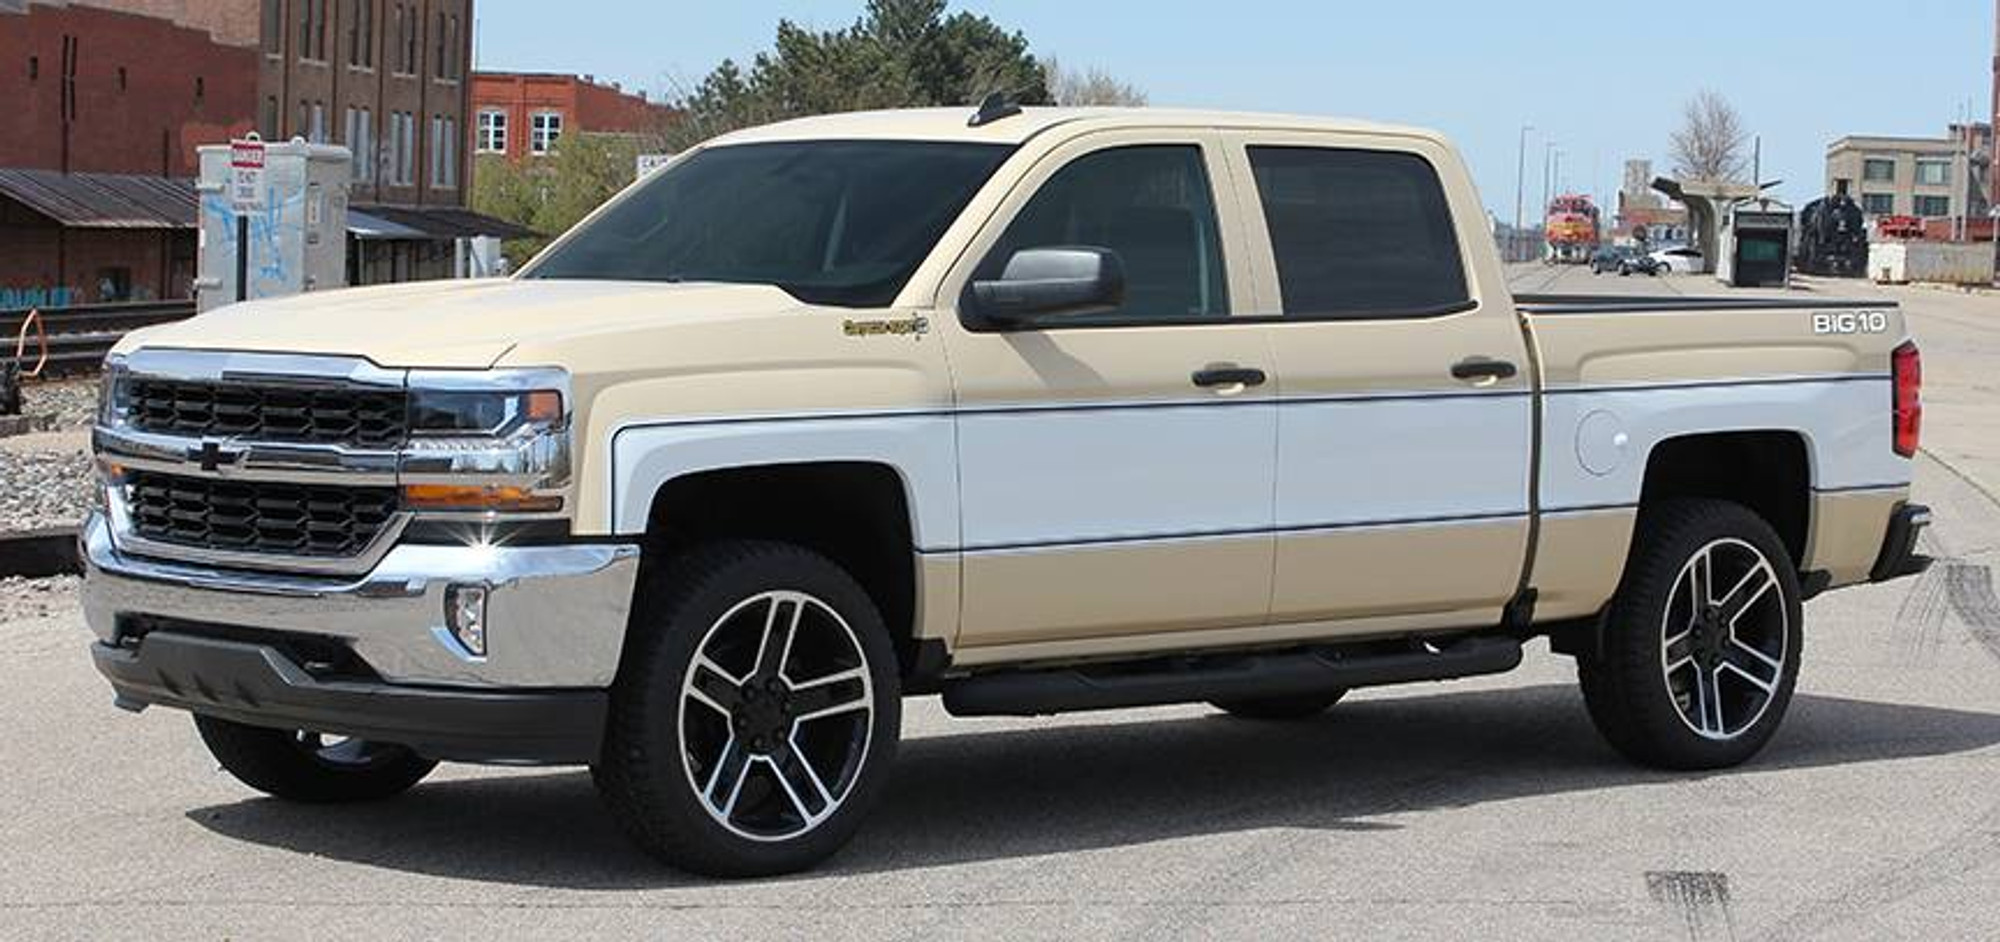 2014 2019 chevy silverado retro cheyenne graphic kit angled front side view  [ 2000 x 942 Pixel ]